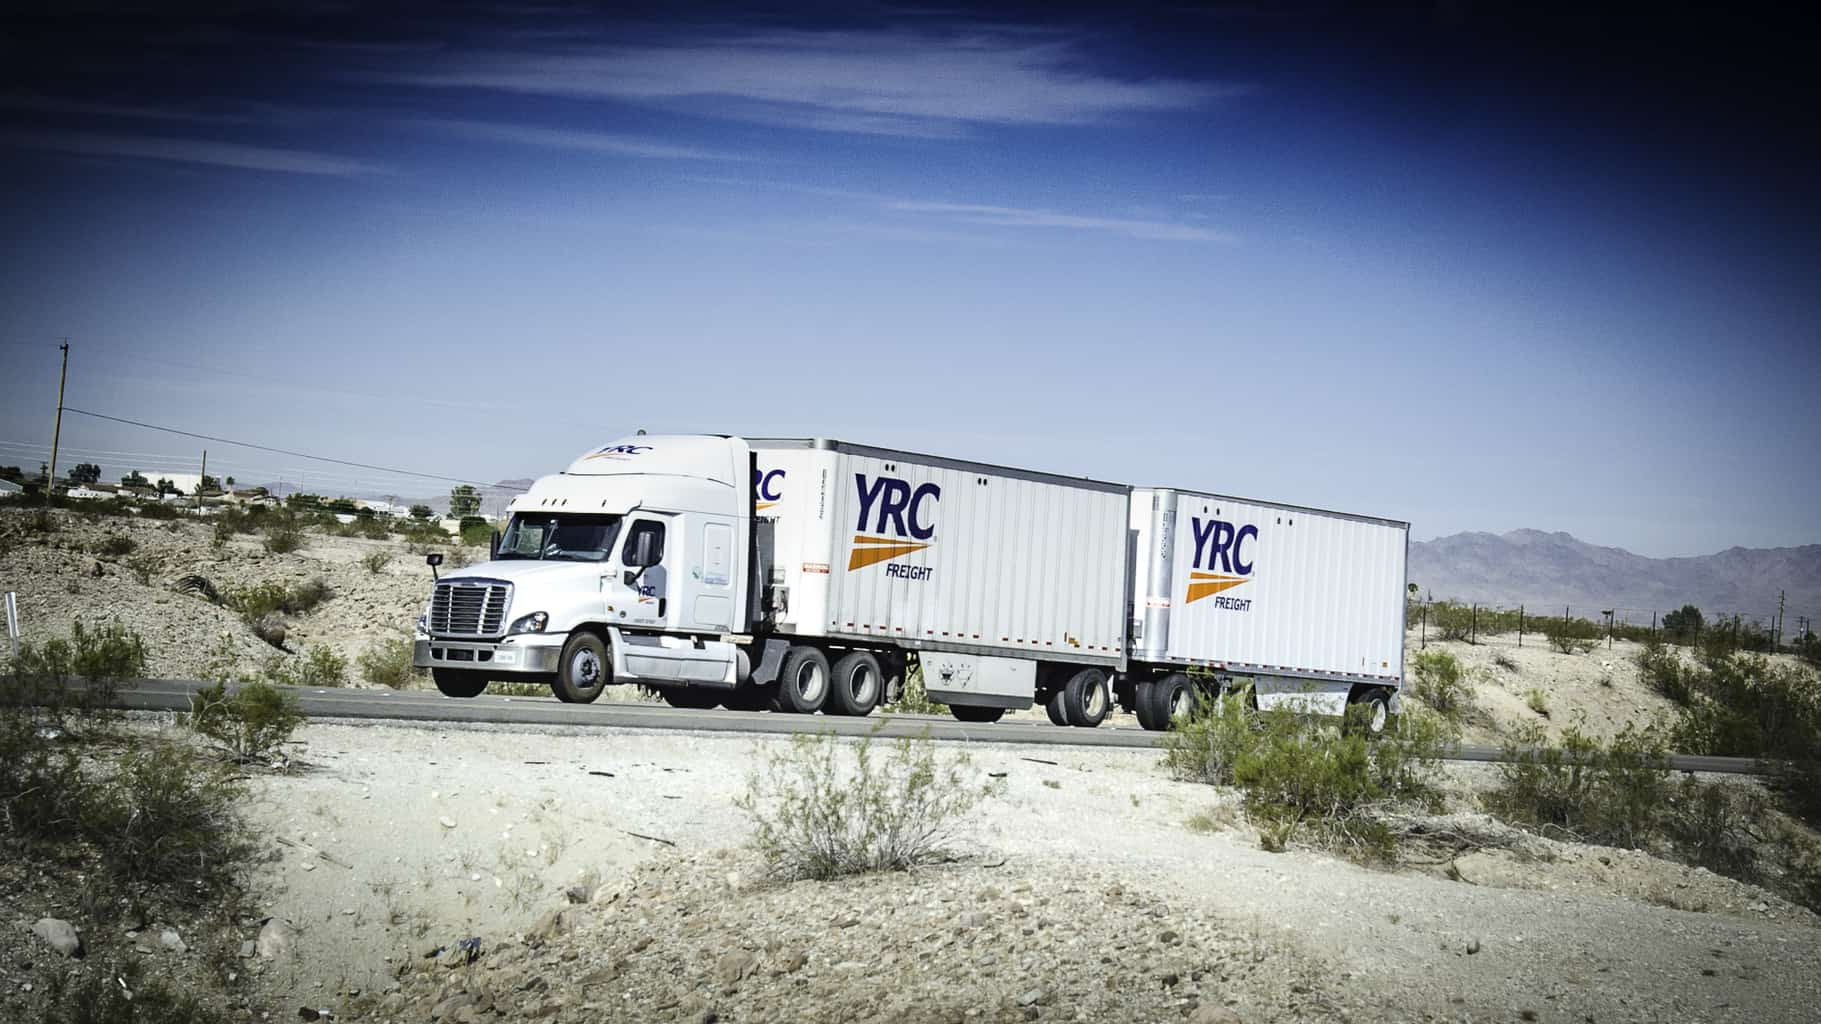 YRC, Teamsters begin contract talks to replace 5-year pact